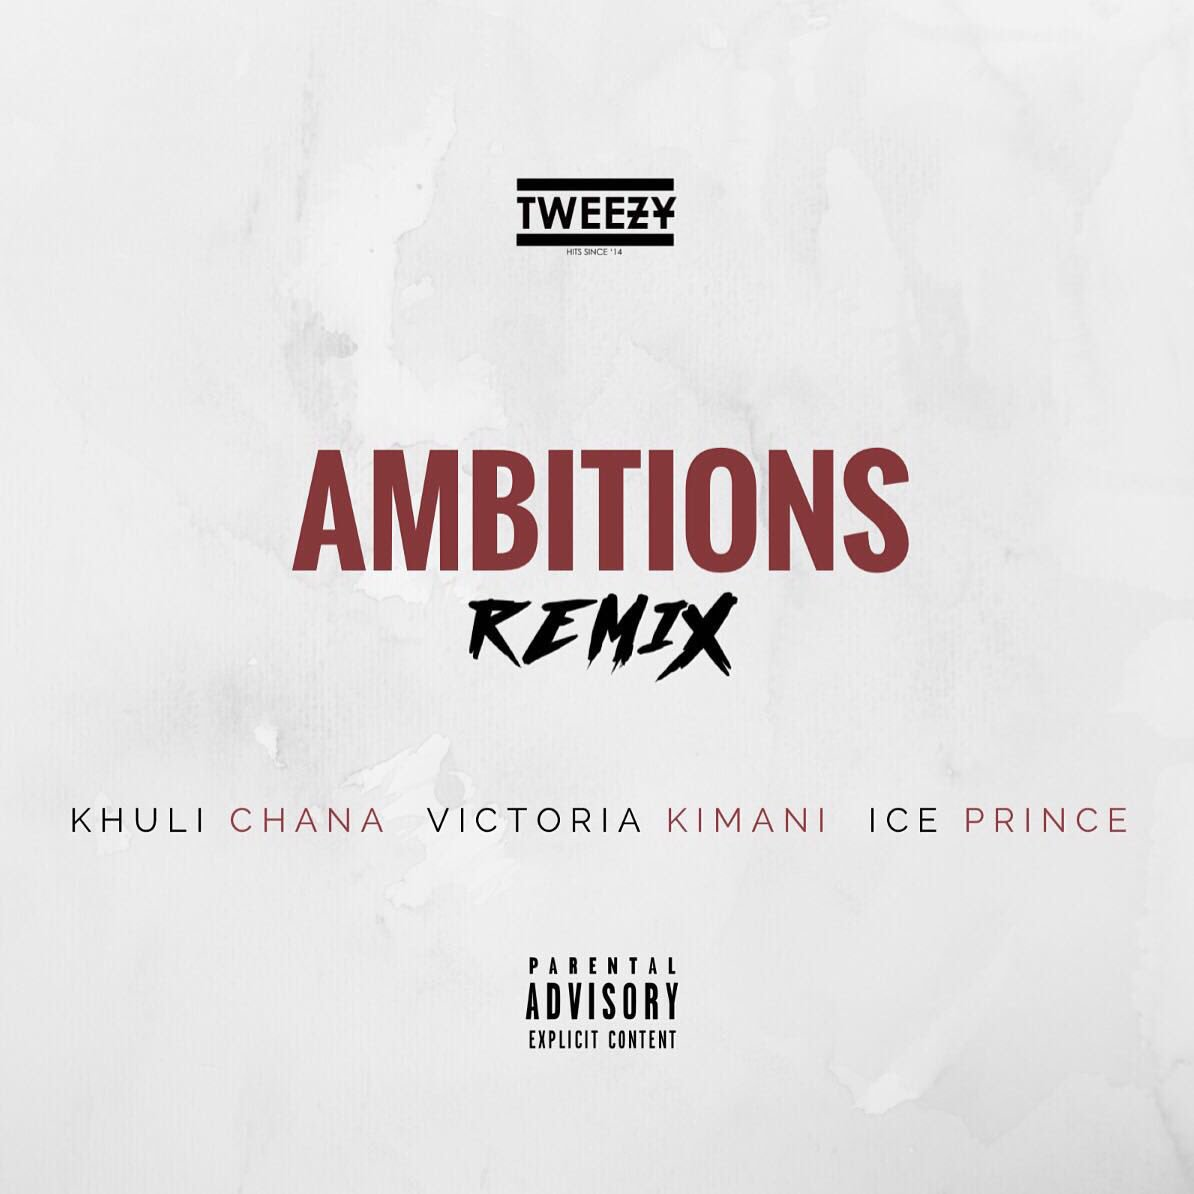 New Release: Tweezy - Ambitions Remix [ft Ice Prince, Victoria Kimani, Khuli Chana]